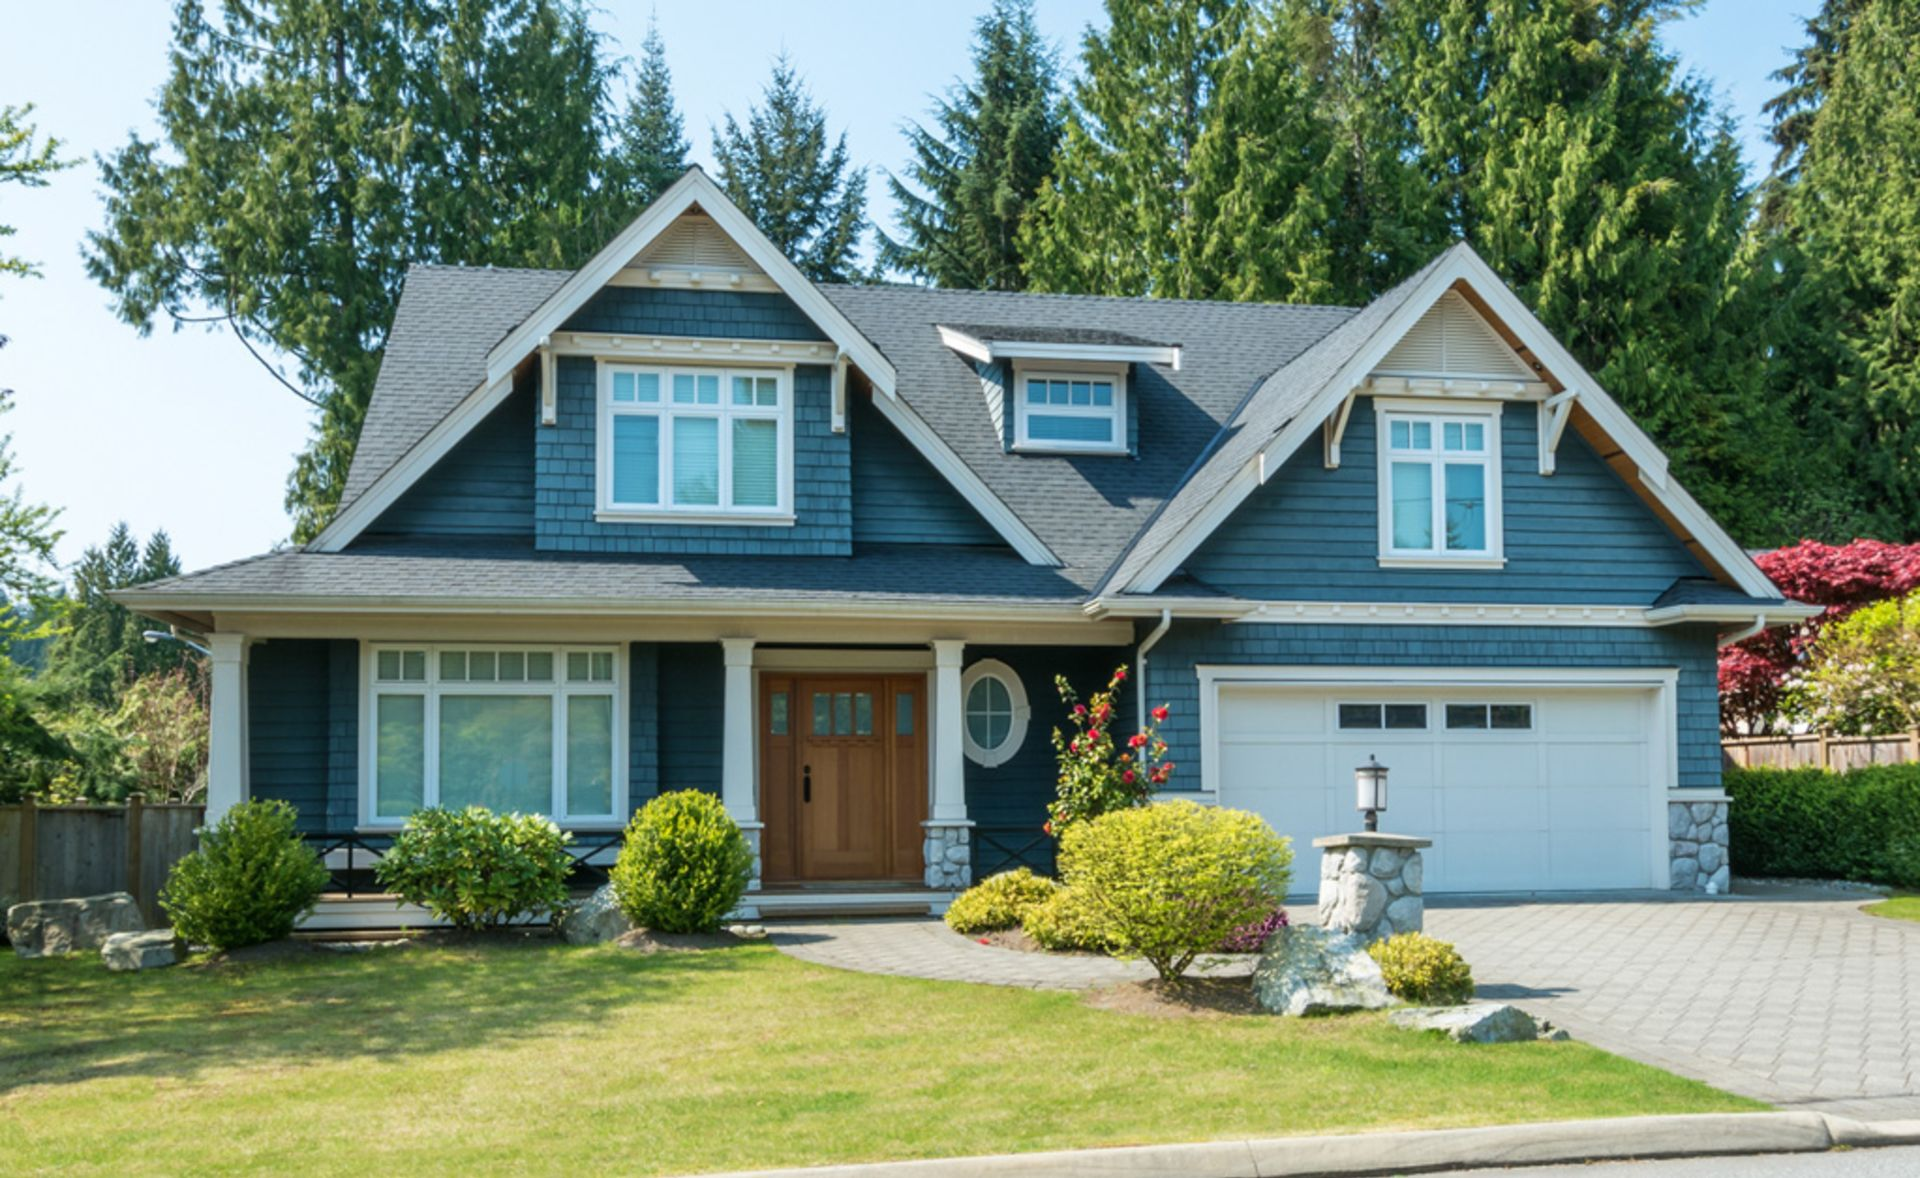 Sellers: How to Decide Between Multiple Offers